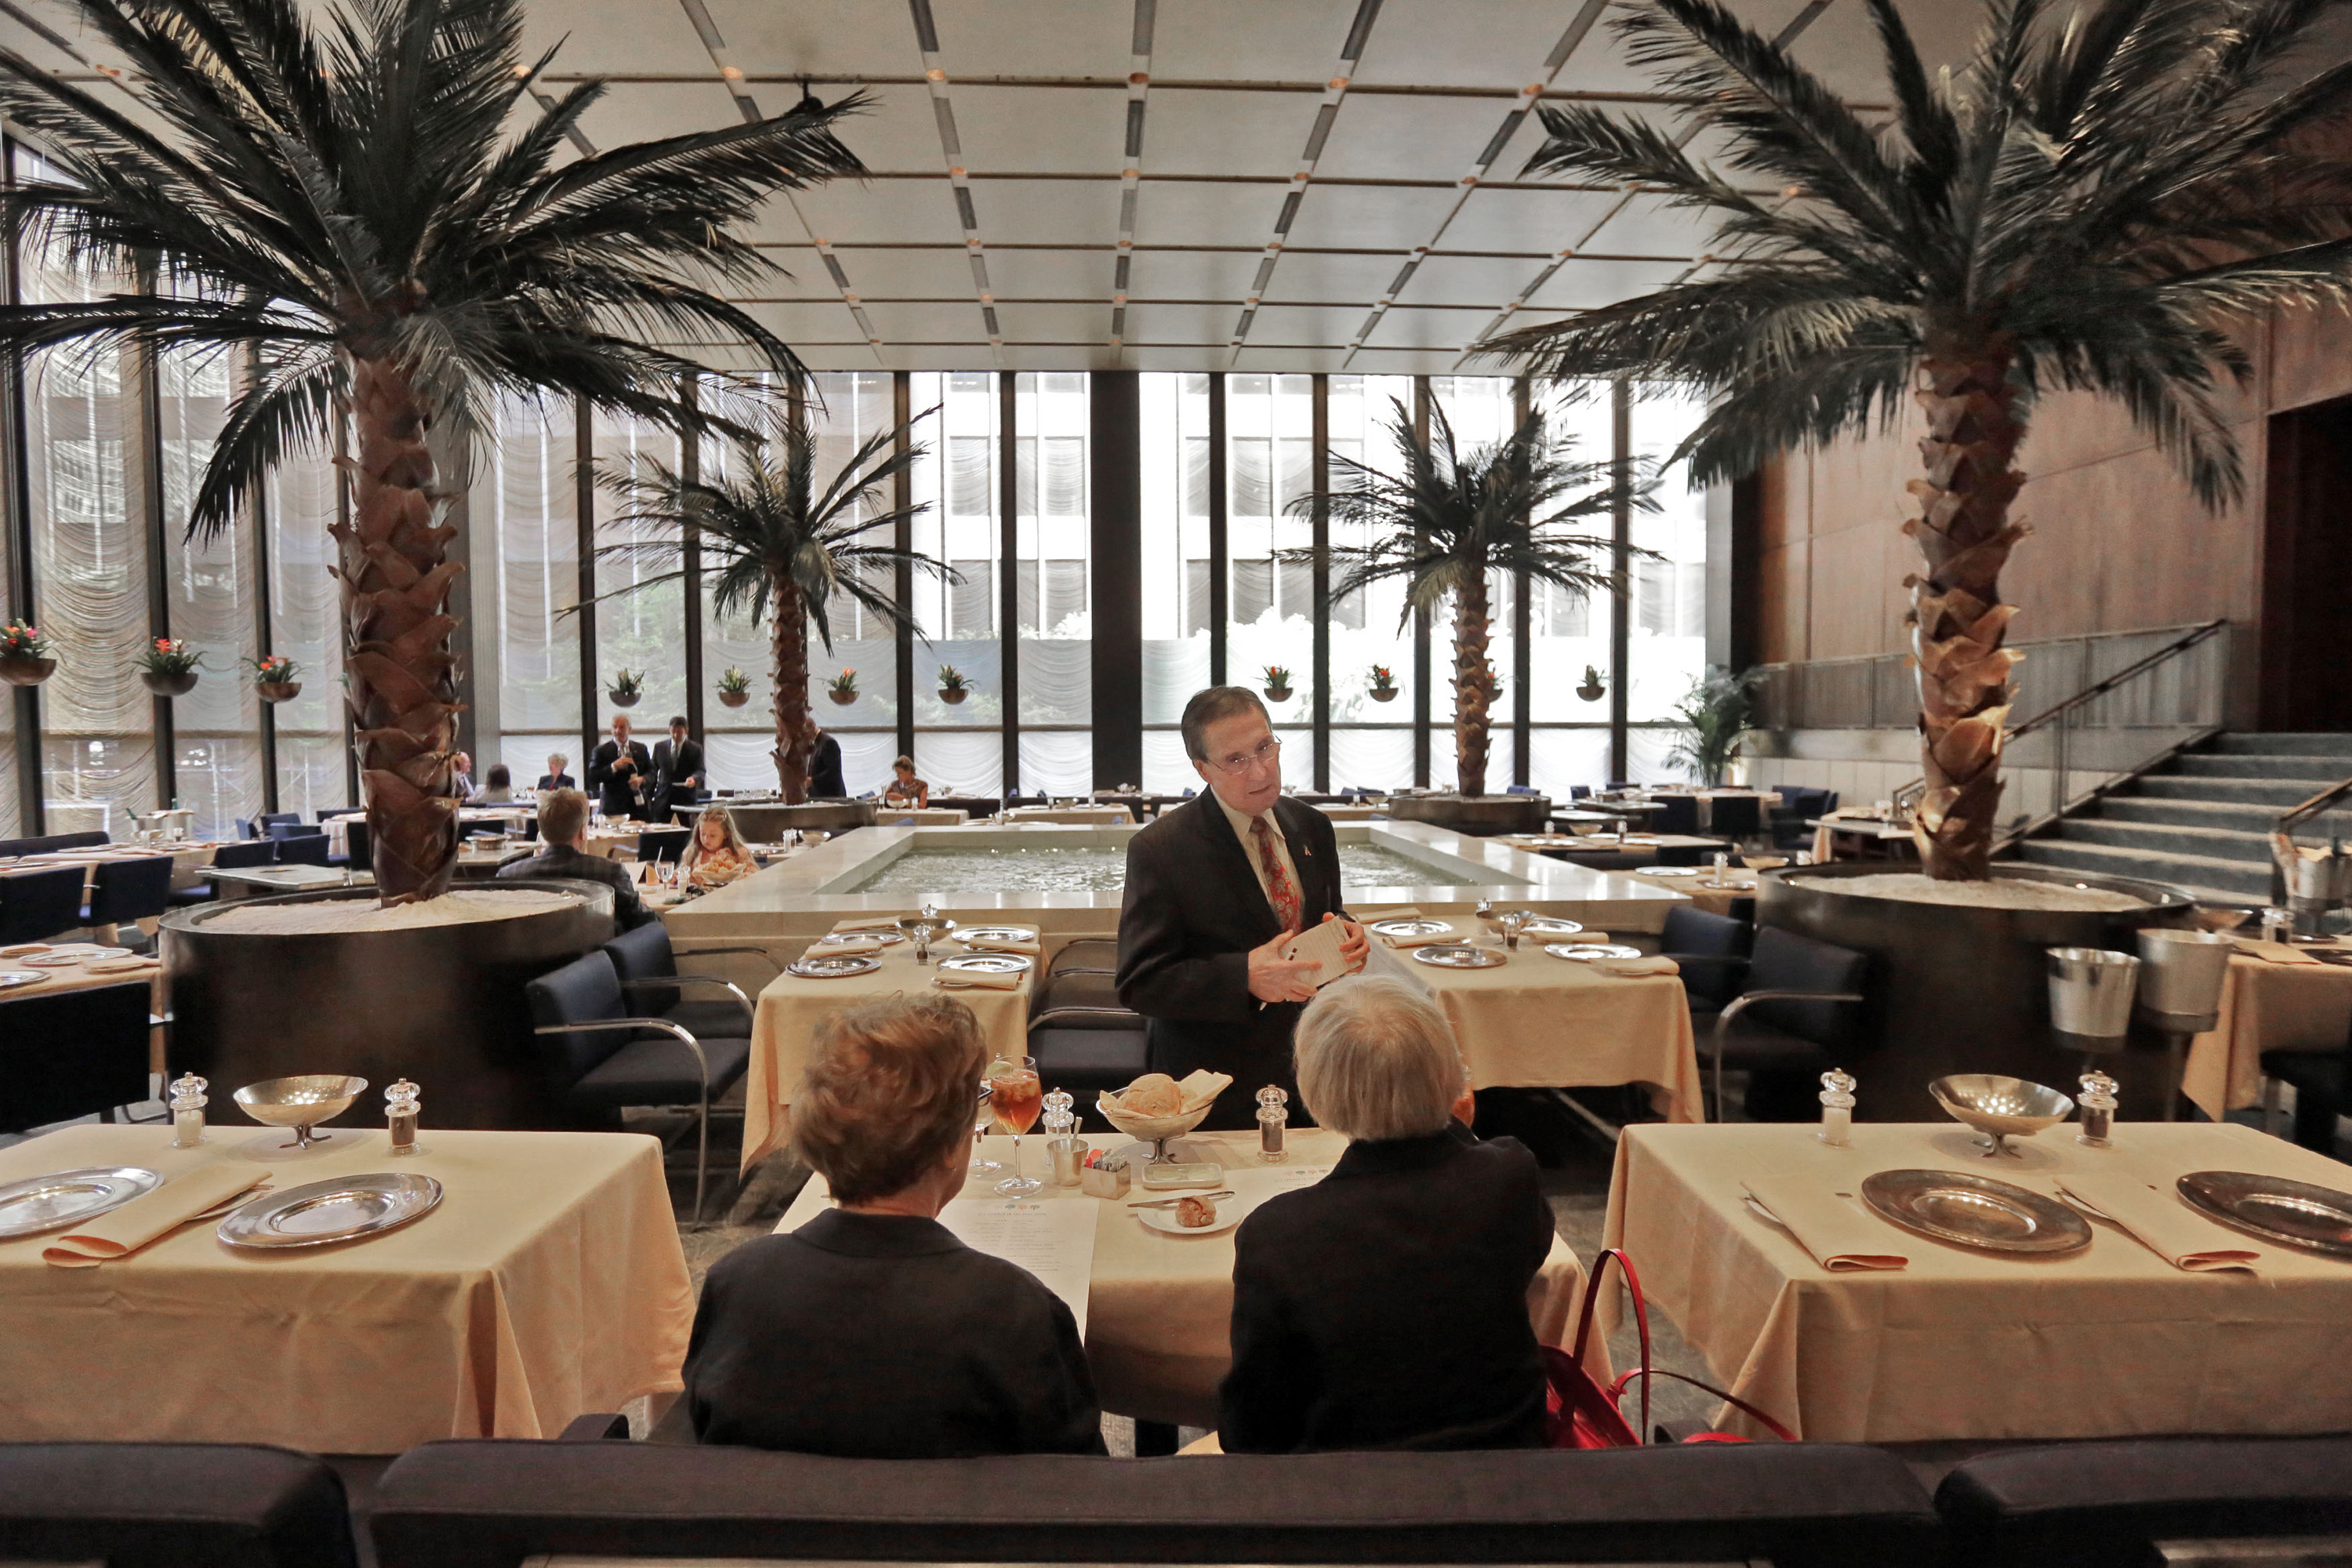 In this July 12, 2016 photo, a waiter speaks with diners in the Pool Room of The Four Seasons, in New York's landmarked Seagram building, which has housed the restaurant for 57 years. Designed by the legendary architect Philip Johnson and the building's architect Ludwig Mies van der Rohe, the restaurant was a favorite of celebrities and business titans ever since it opened in 1959. The epitome of the midcentury style in Midtown Manhattan, The Four Seasons is scheduled to close on Saturday, July 16. (AP Photo/Richard Drew)